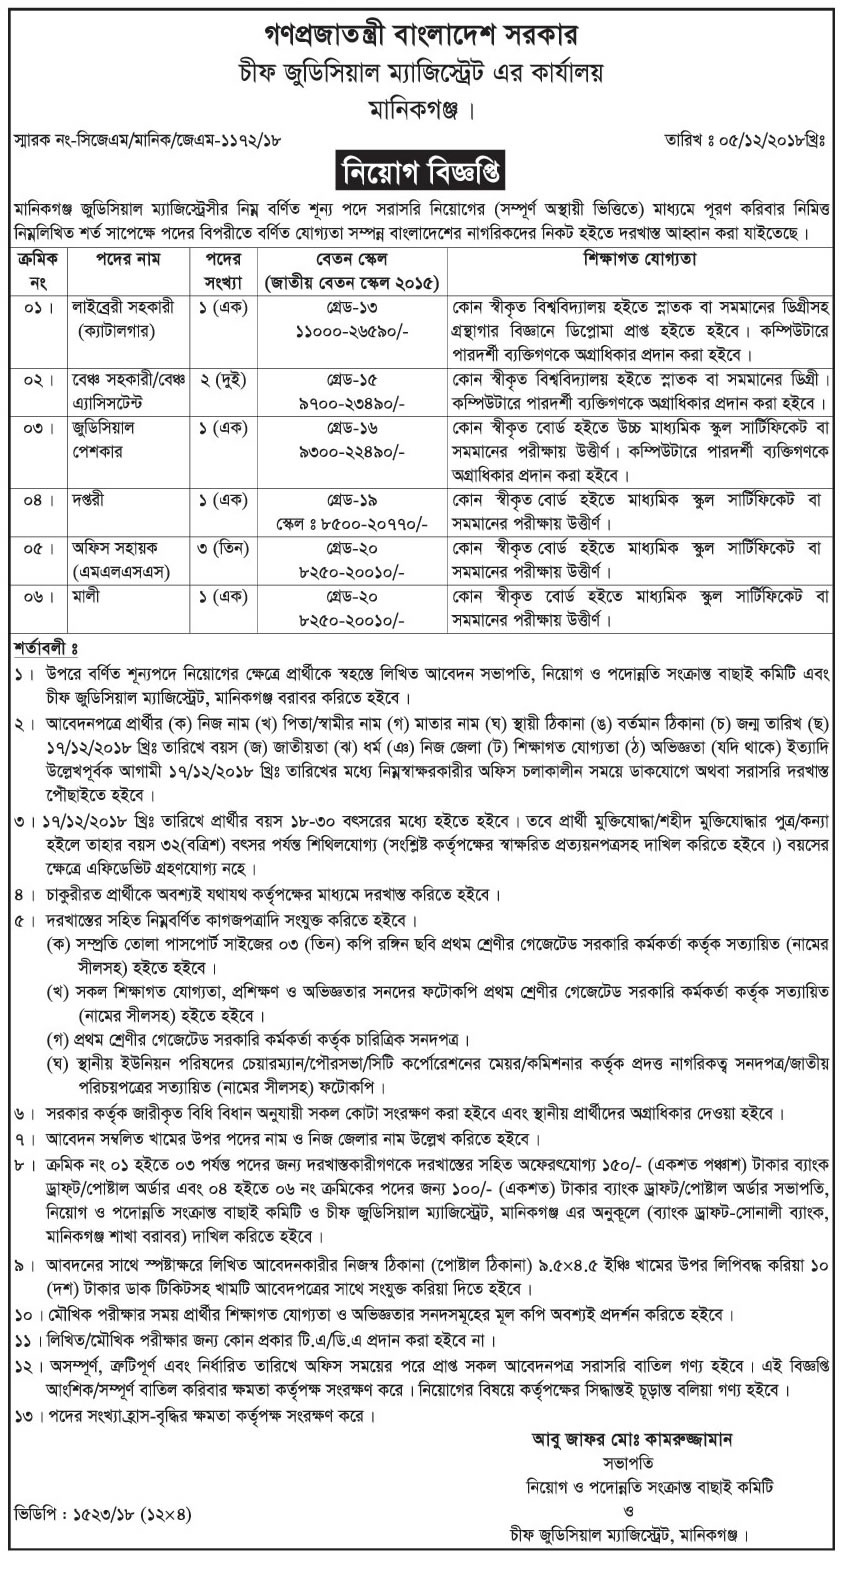 Bangladesh chief Judicial Magistrate Office Job Circular 2018